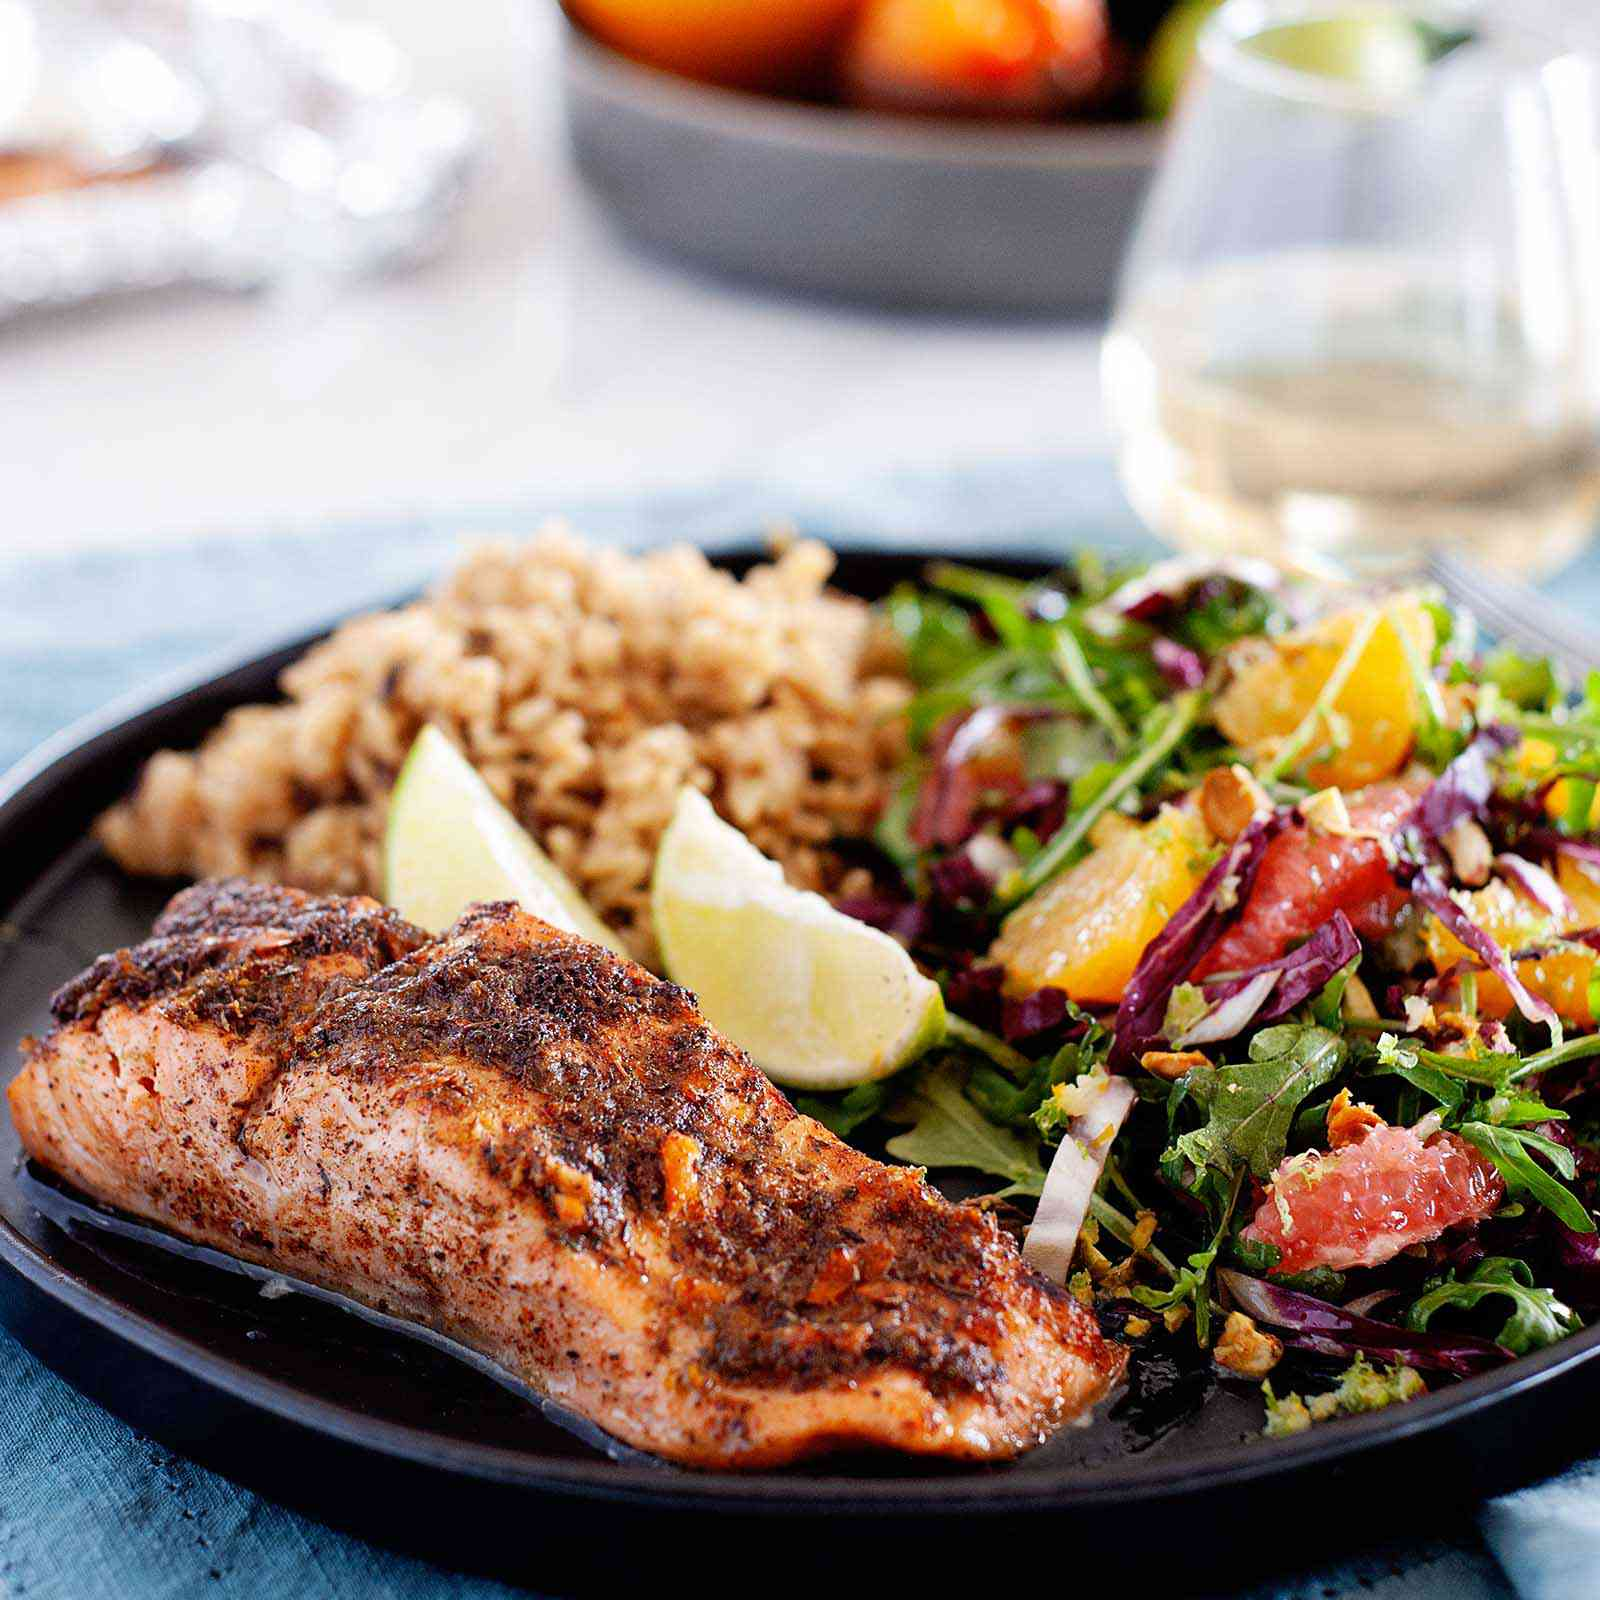 Side view of a fillet of broiled jerk salmon. The salmon has juices pooled at the bottom of it. A mixed green salad with citrus, two lime wedges and rice are visible on the plate behind the salmon. The plate is on a blue linen. Behind the plate is a glass of white wine, cutlery, a bowl of produce and the foil-lined baking sheet.